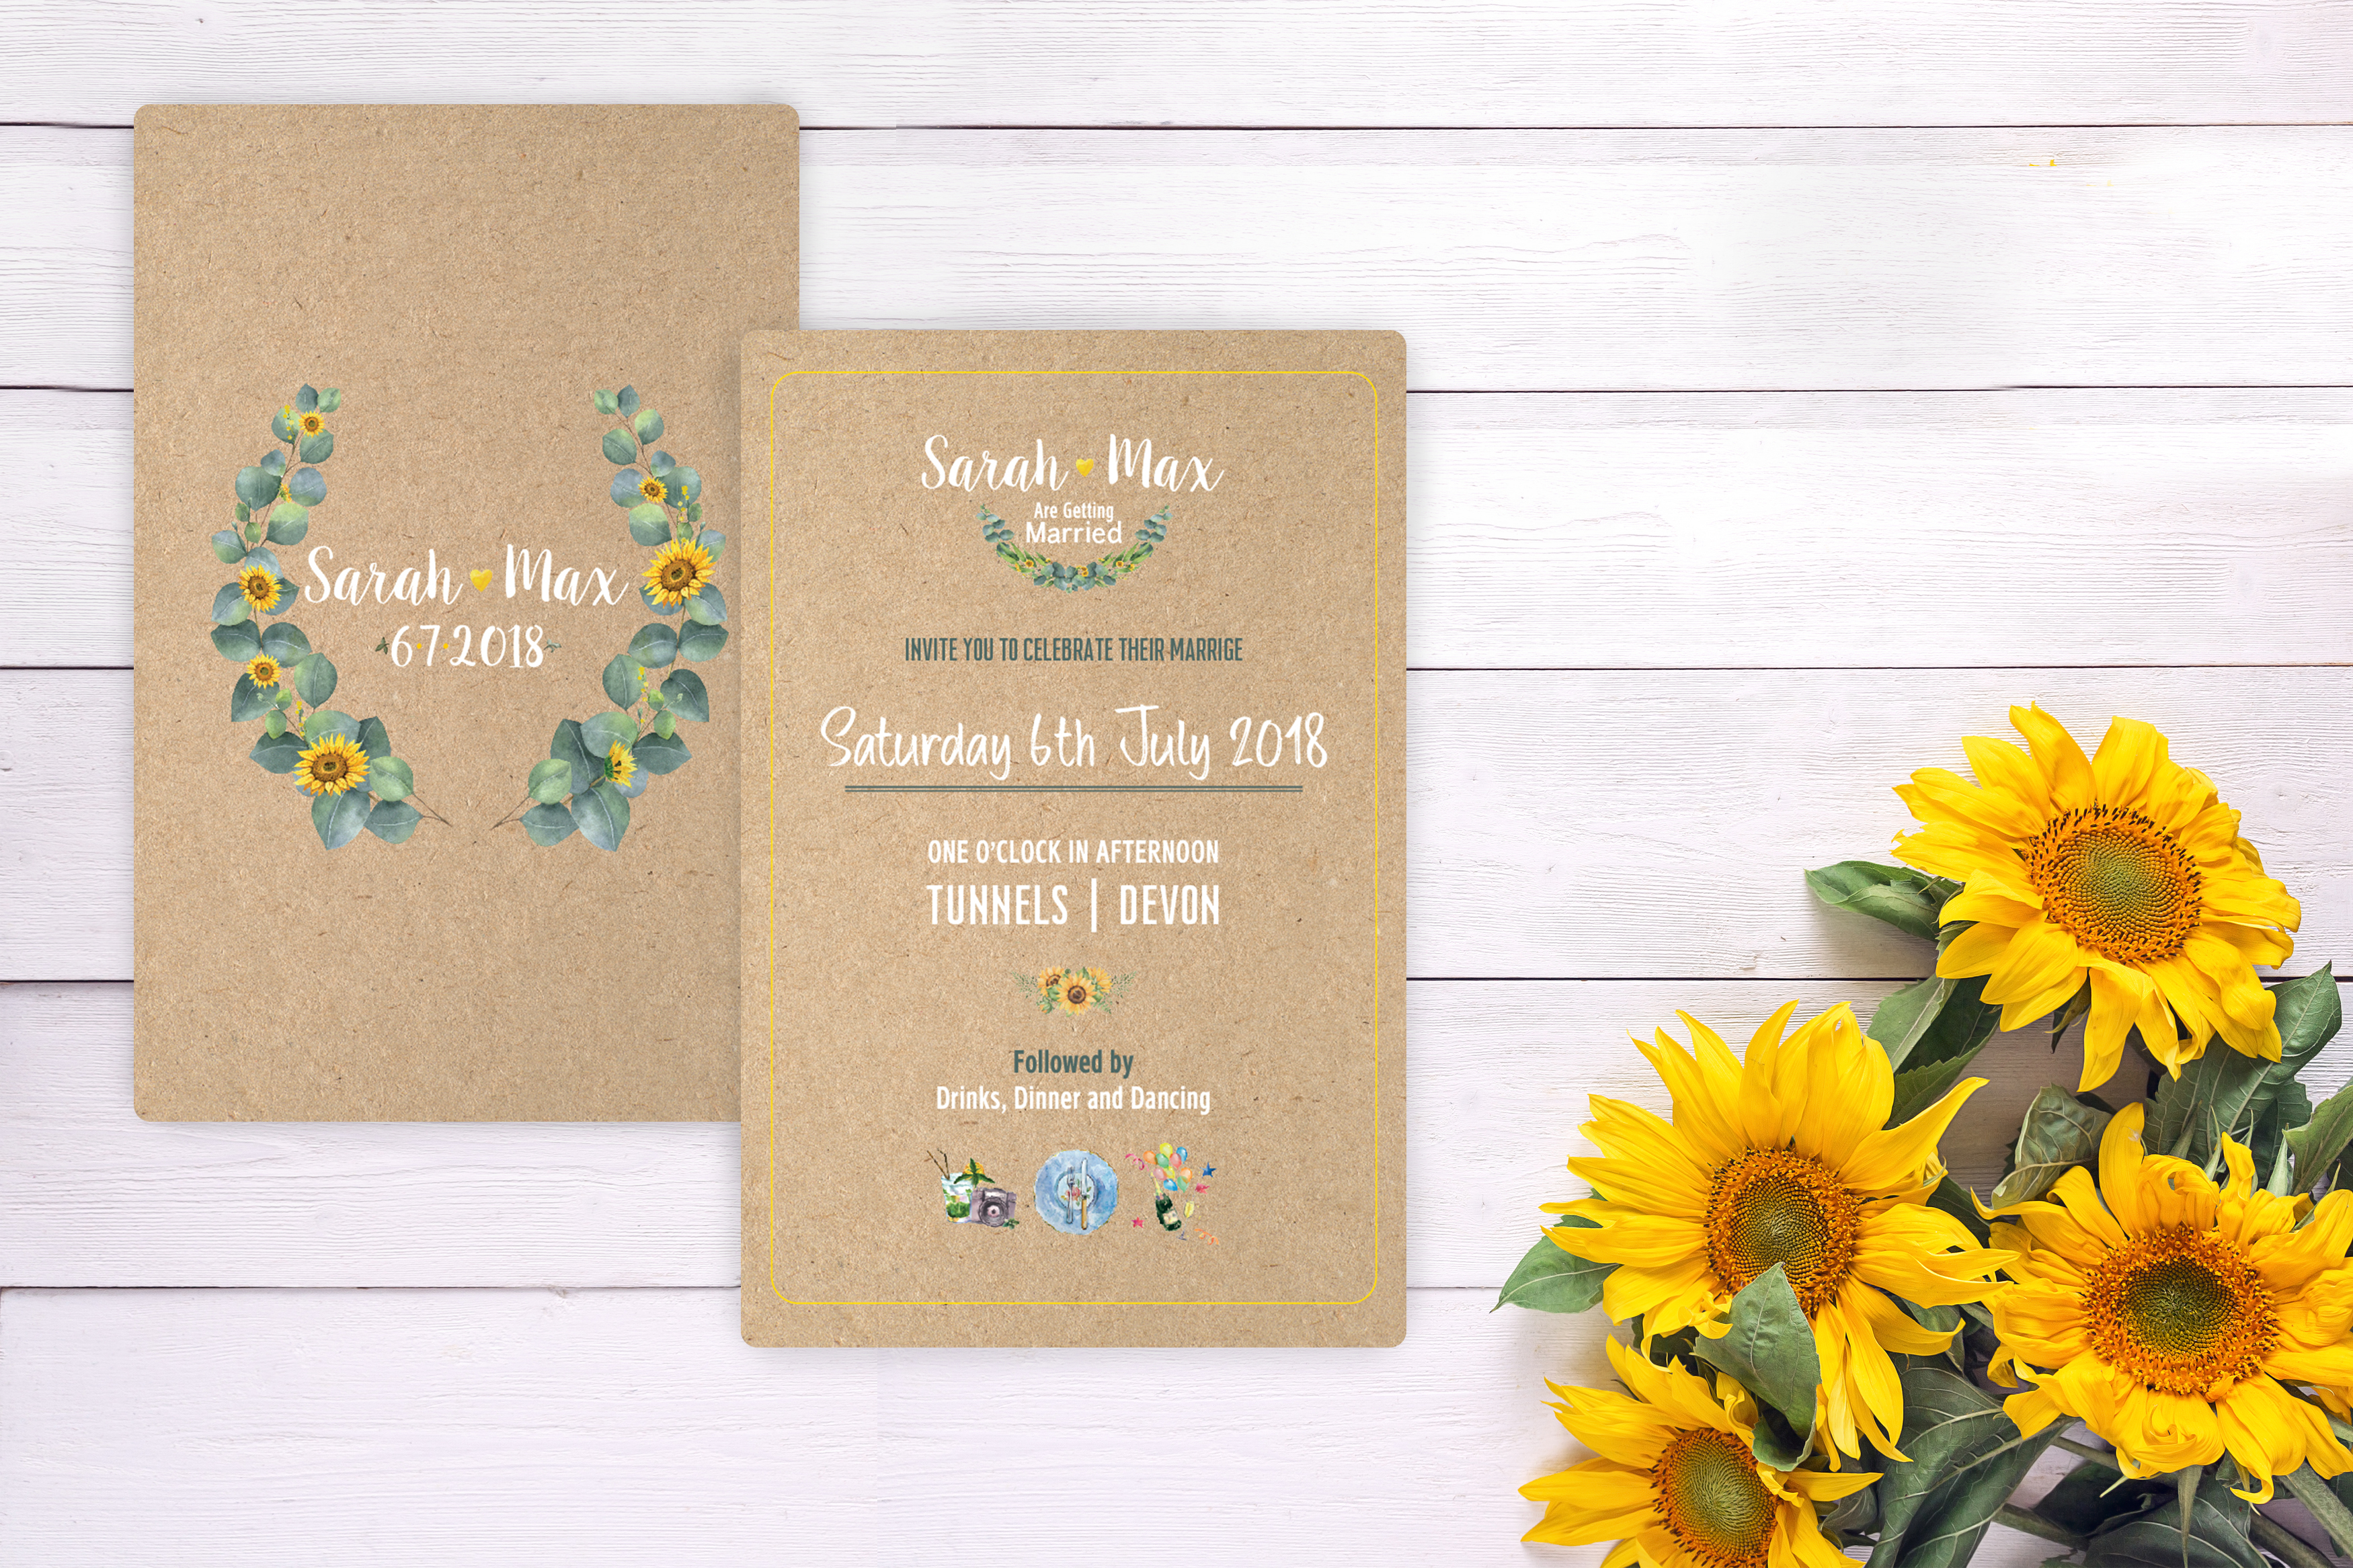 natalie_klug_sunflower_live_wedding_invi